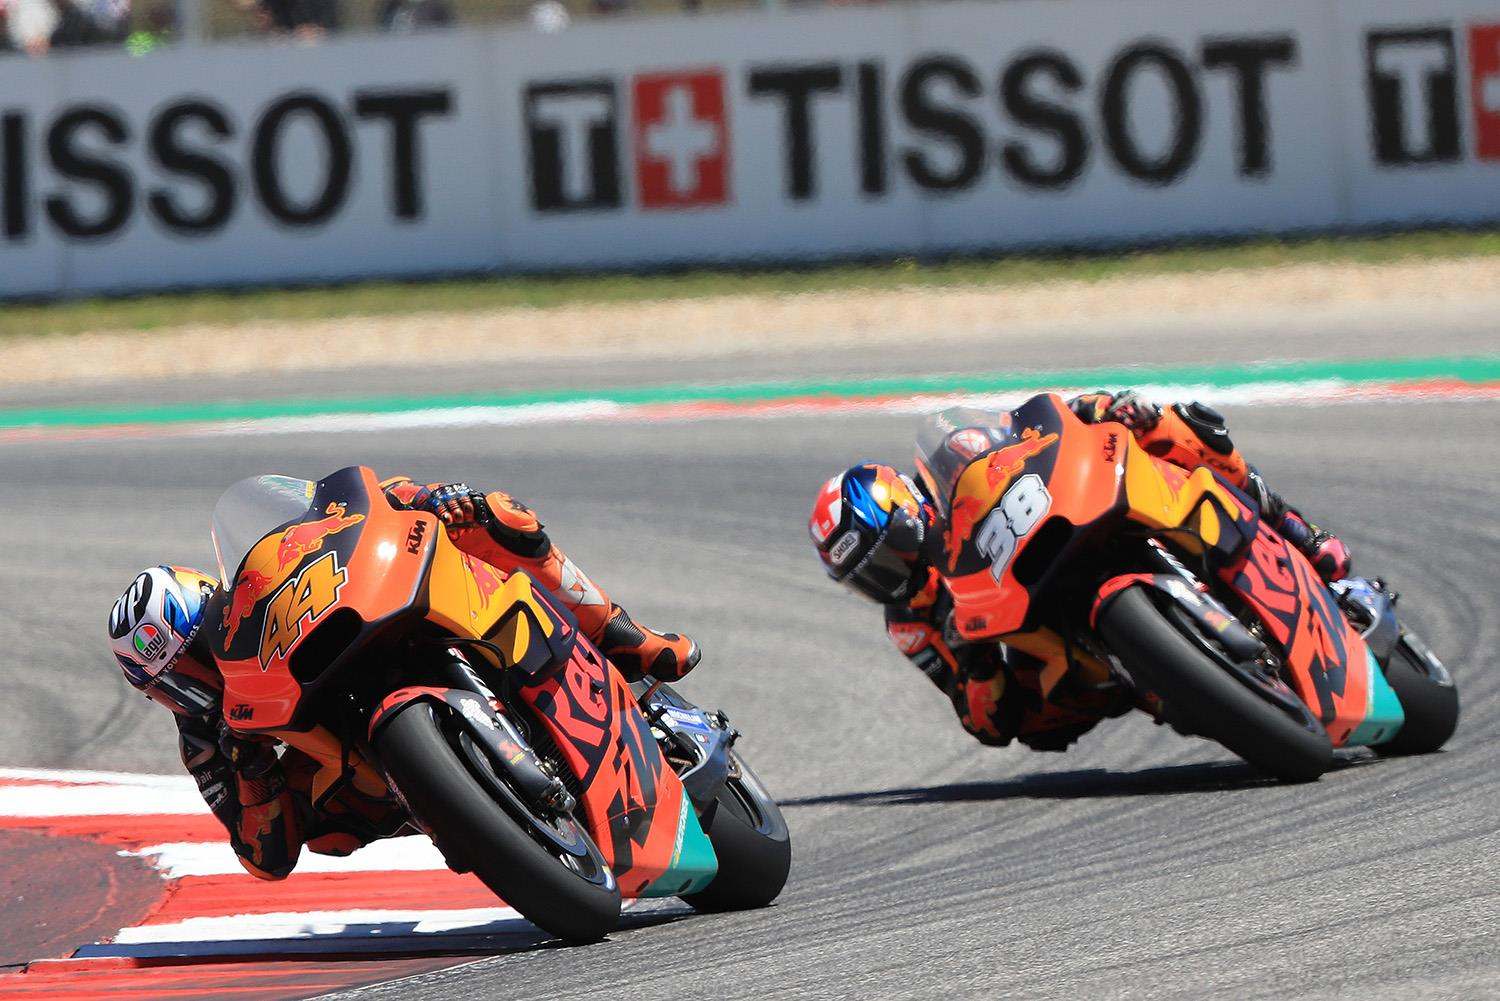 MotoGP: KTM extend Espargaro deal for two further years